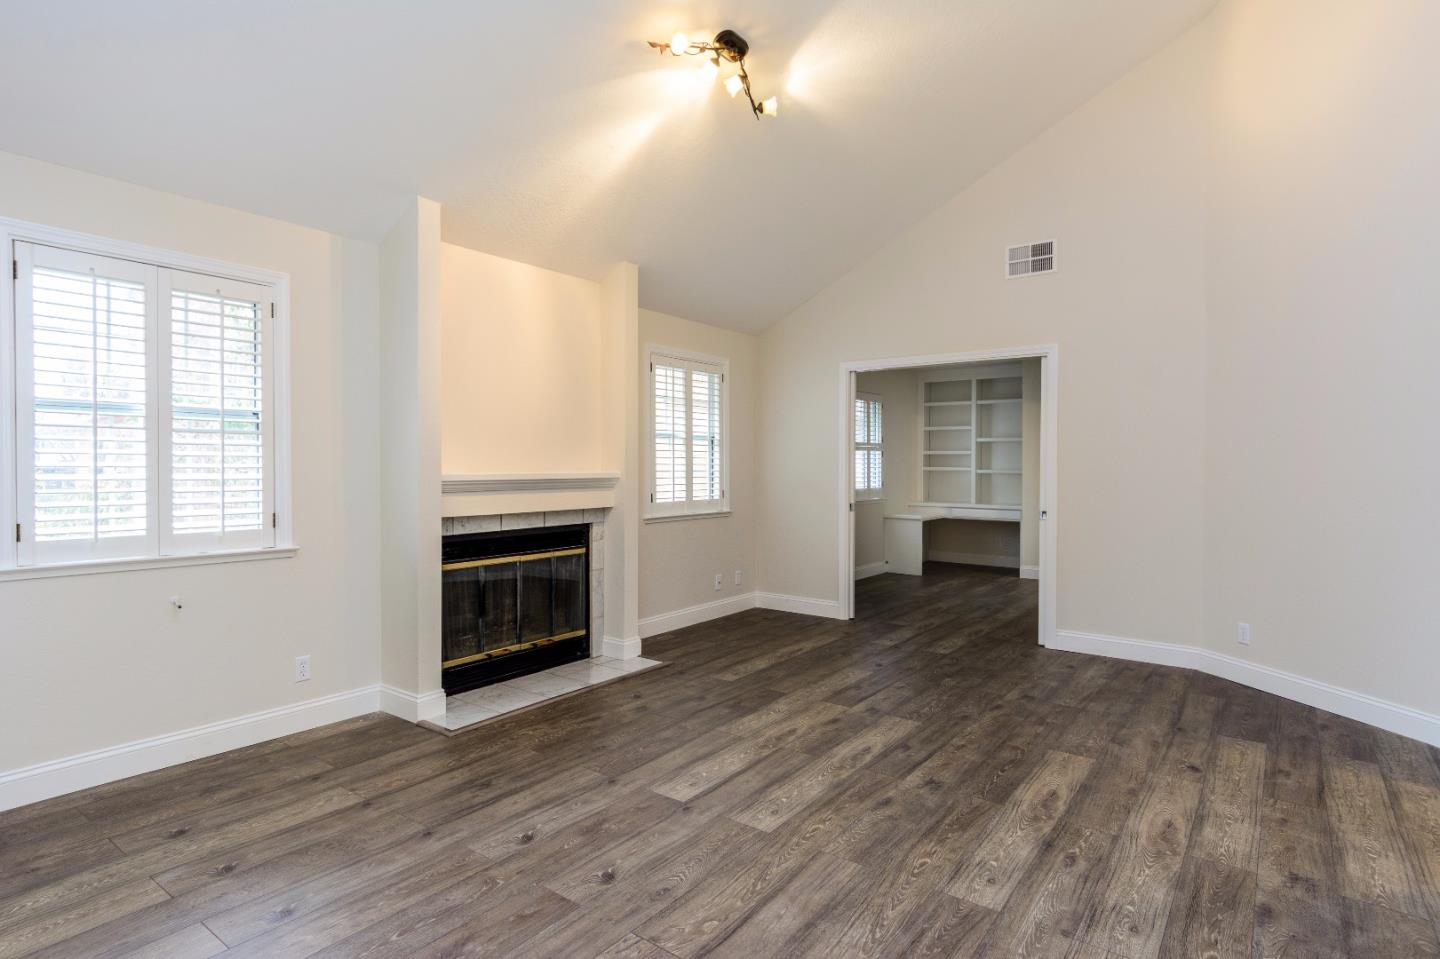 Additional photo for property listing at 470 Gabilan St 4  LOS ALTOS, CALIFORNIA 94022